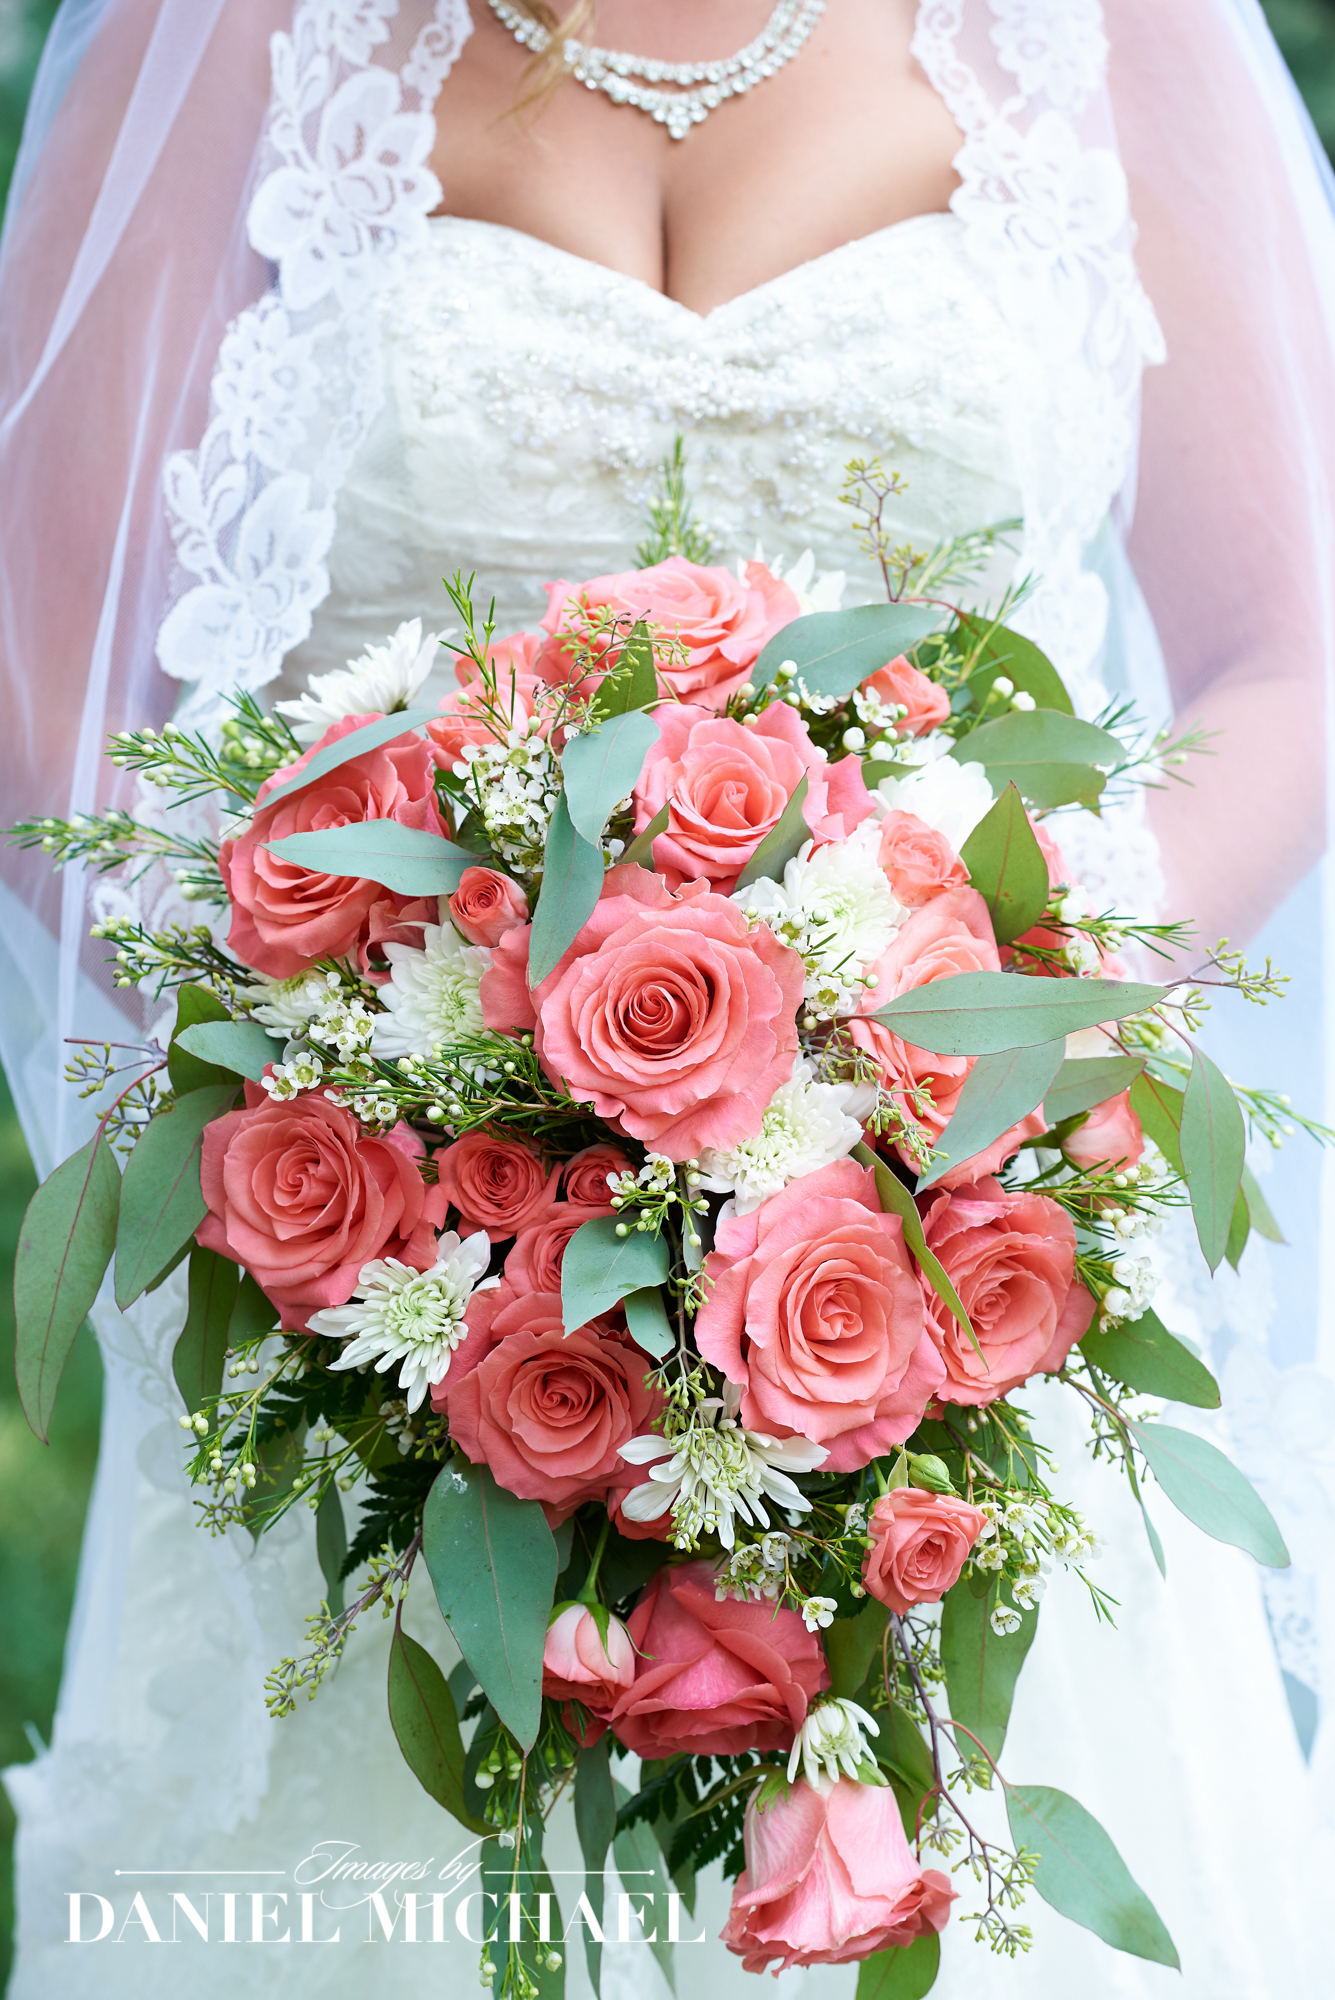 Hiatts Wedding Flowers